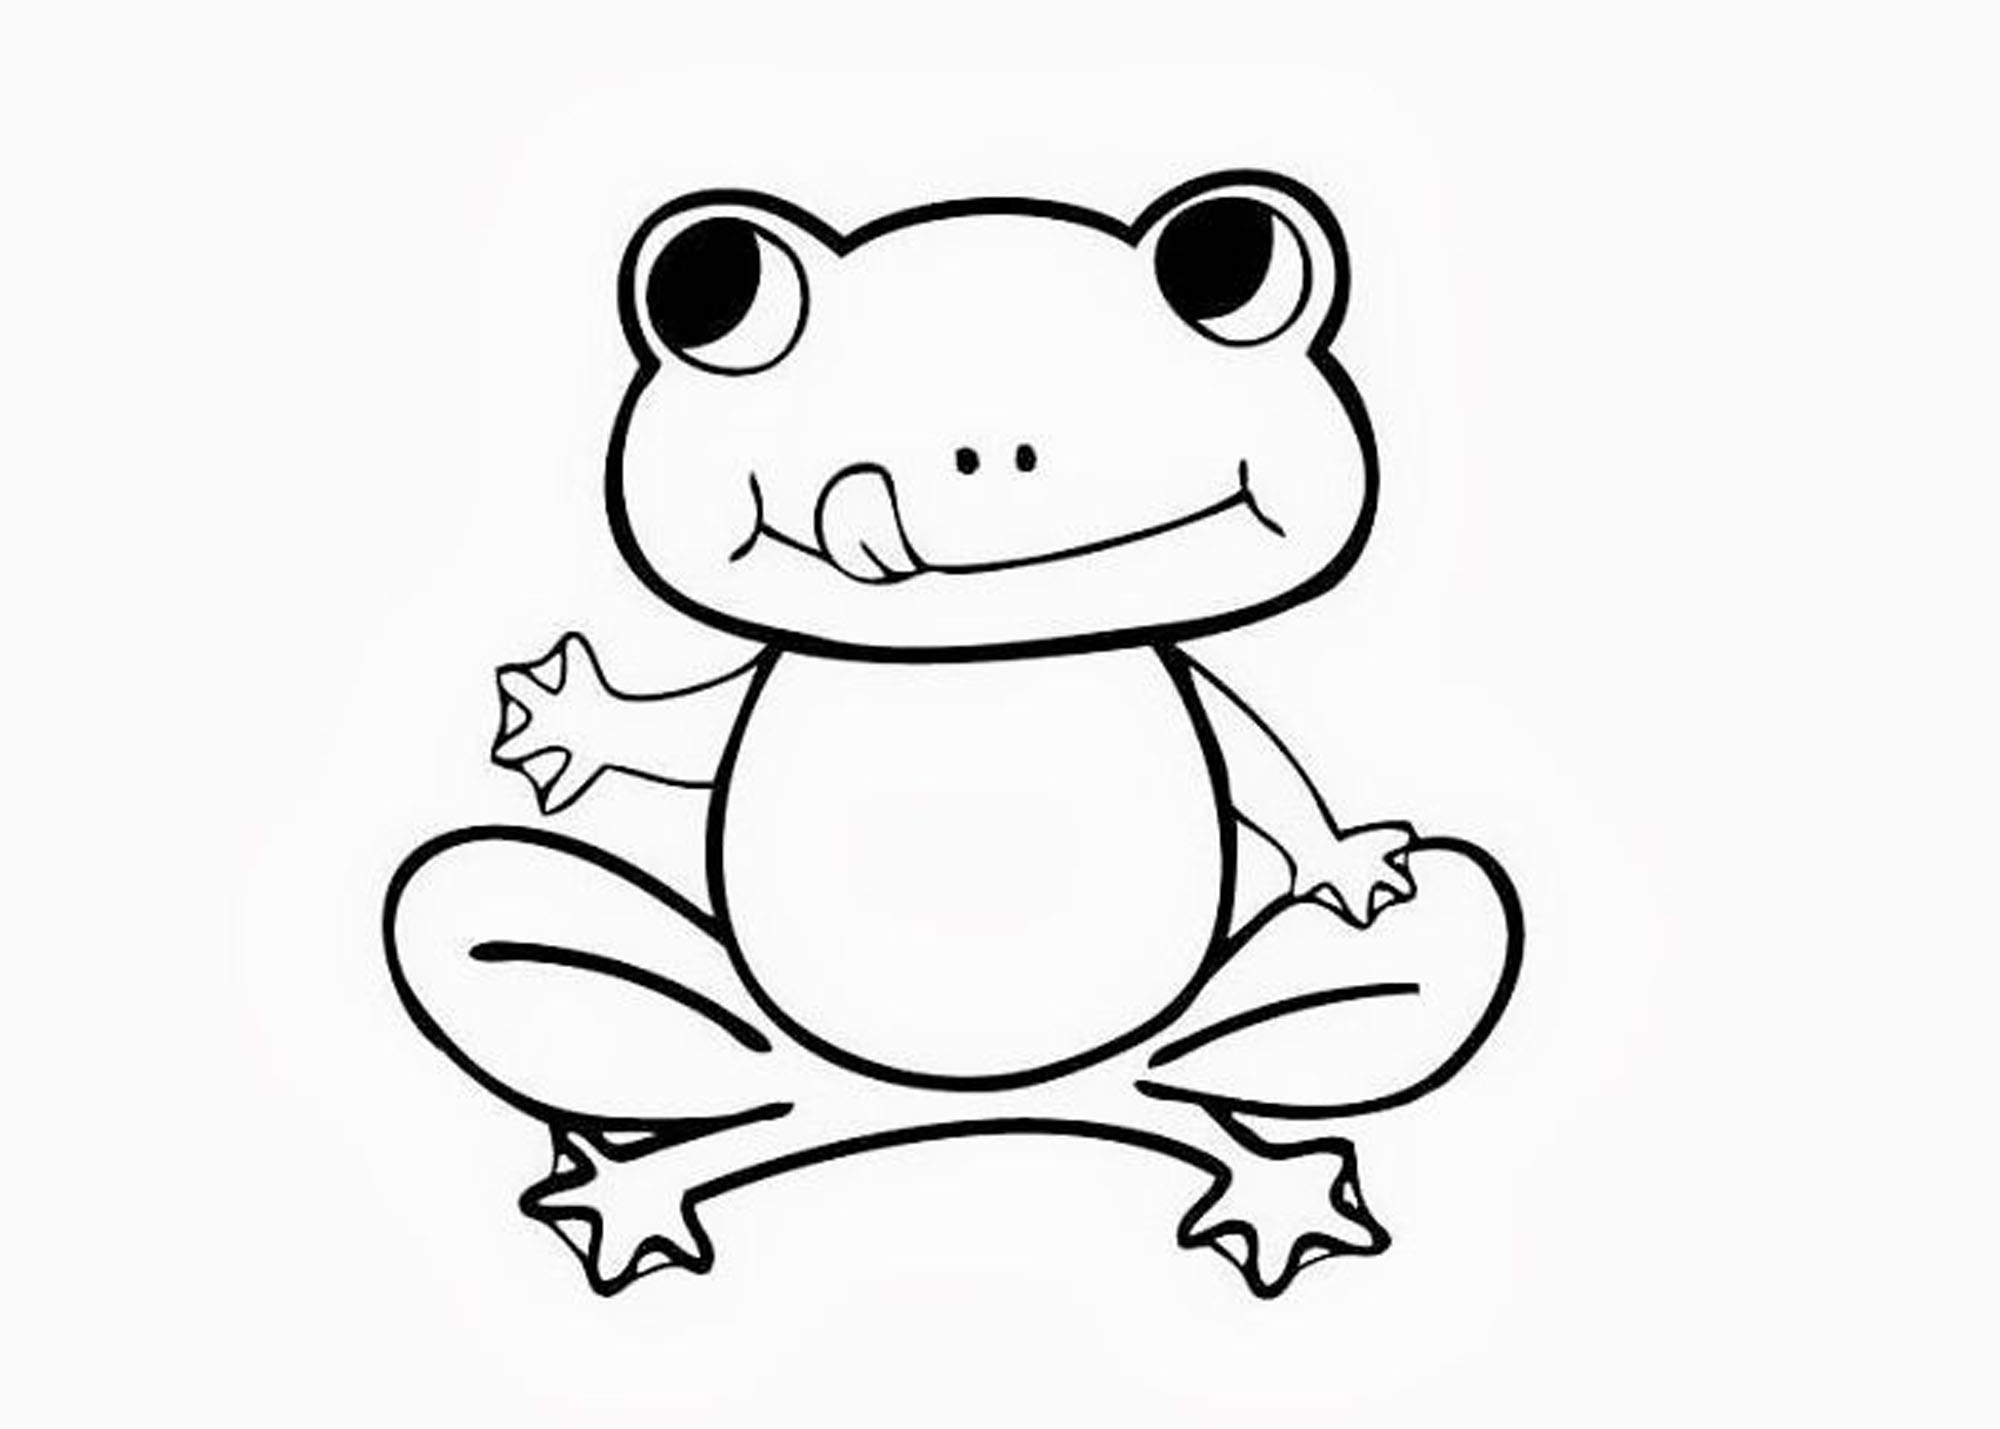 coloring book picture of a frog frog 01 coloring page coloring page central frog of coloring book a picture